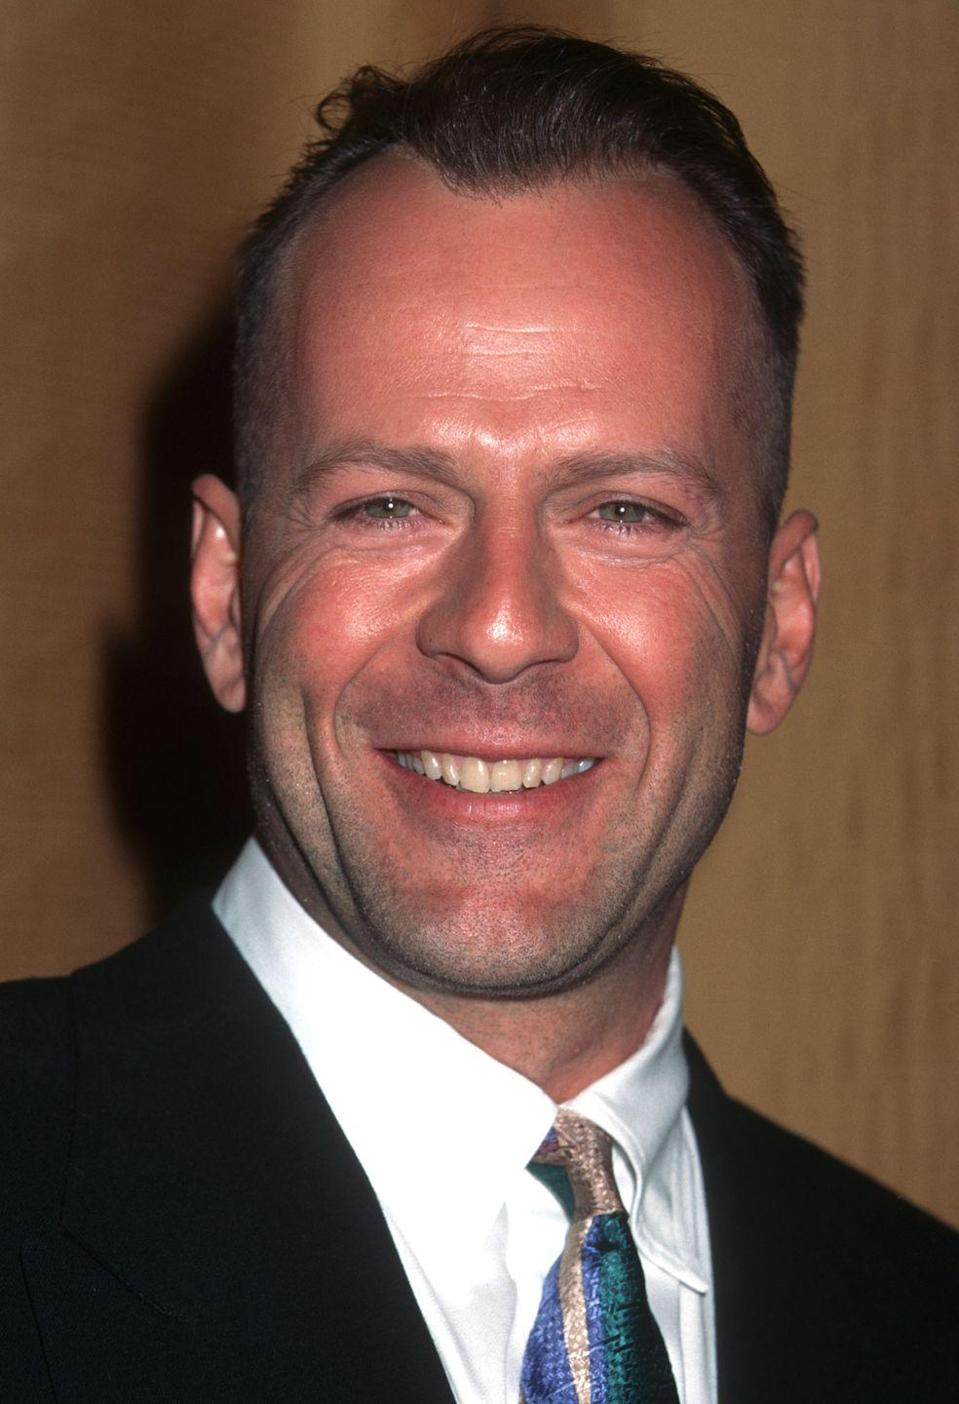 <p>You may be more familiar with a bald Bruce Willis, but when the actor first got his start as John McClane in <em>Die Hard, </em>he was sporting a full(ish) head of brown hair.</p>